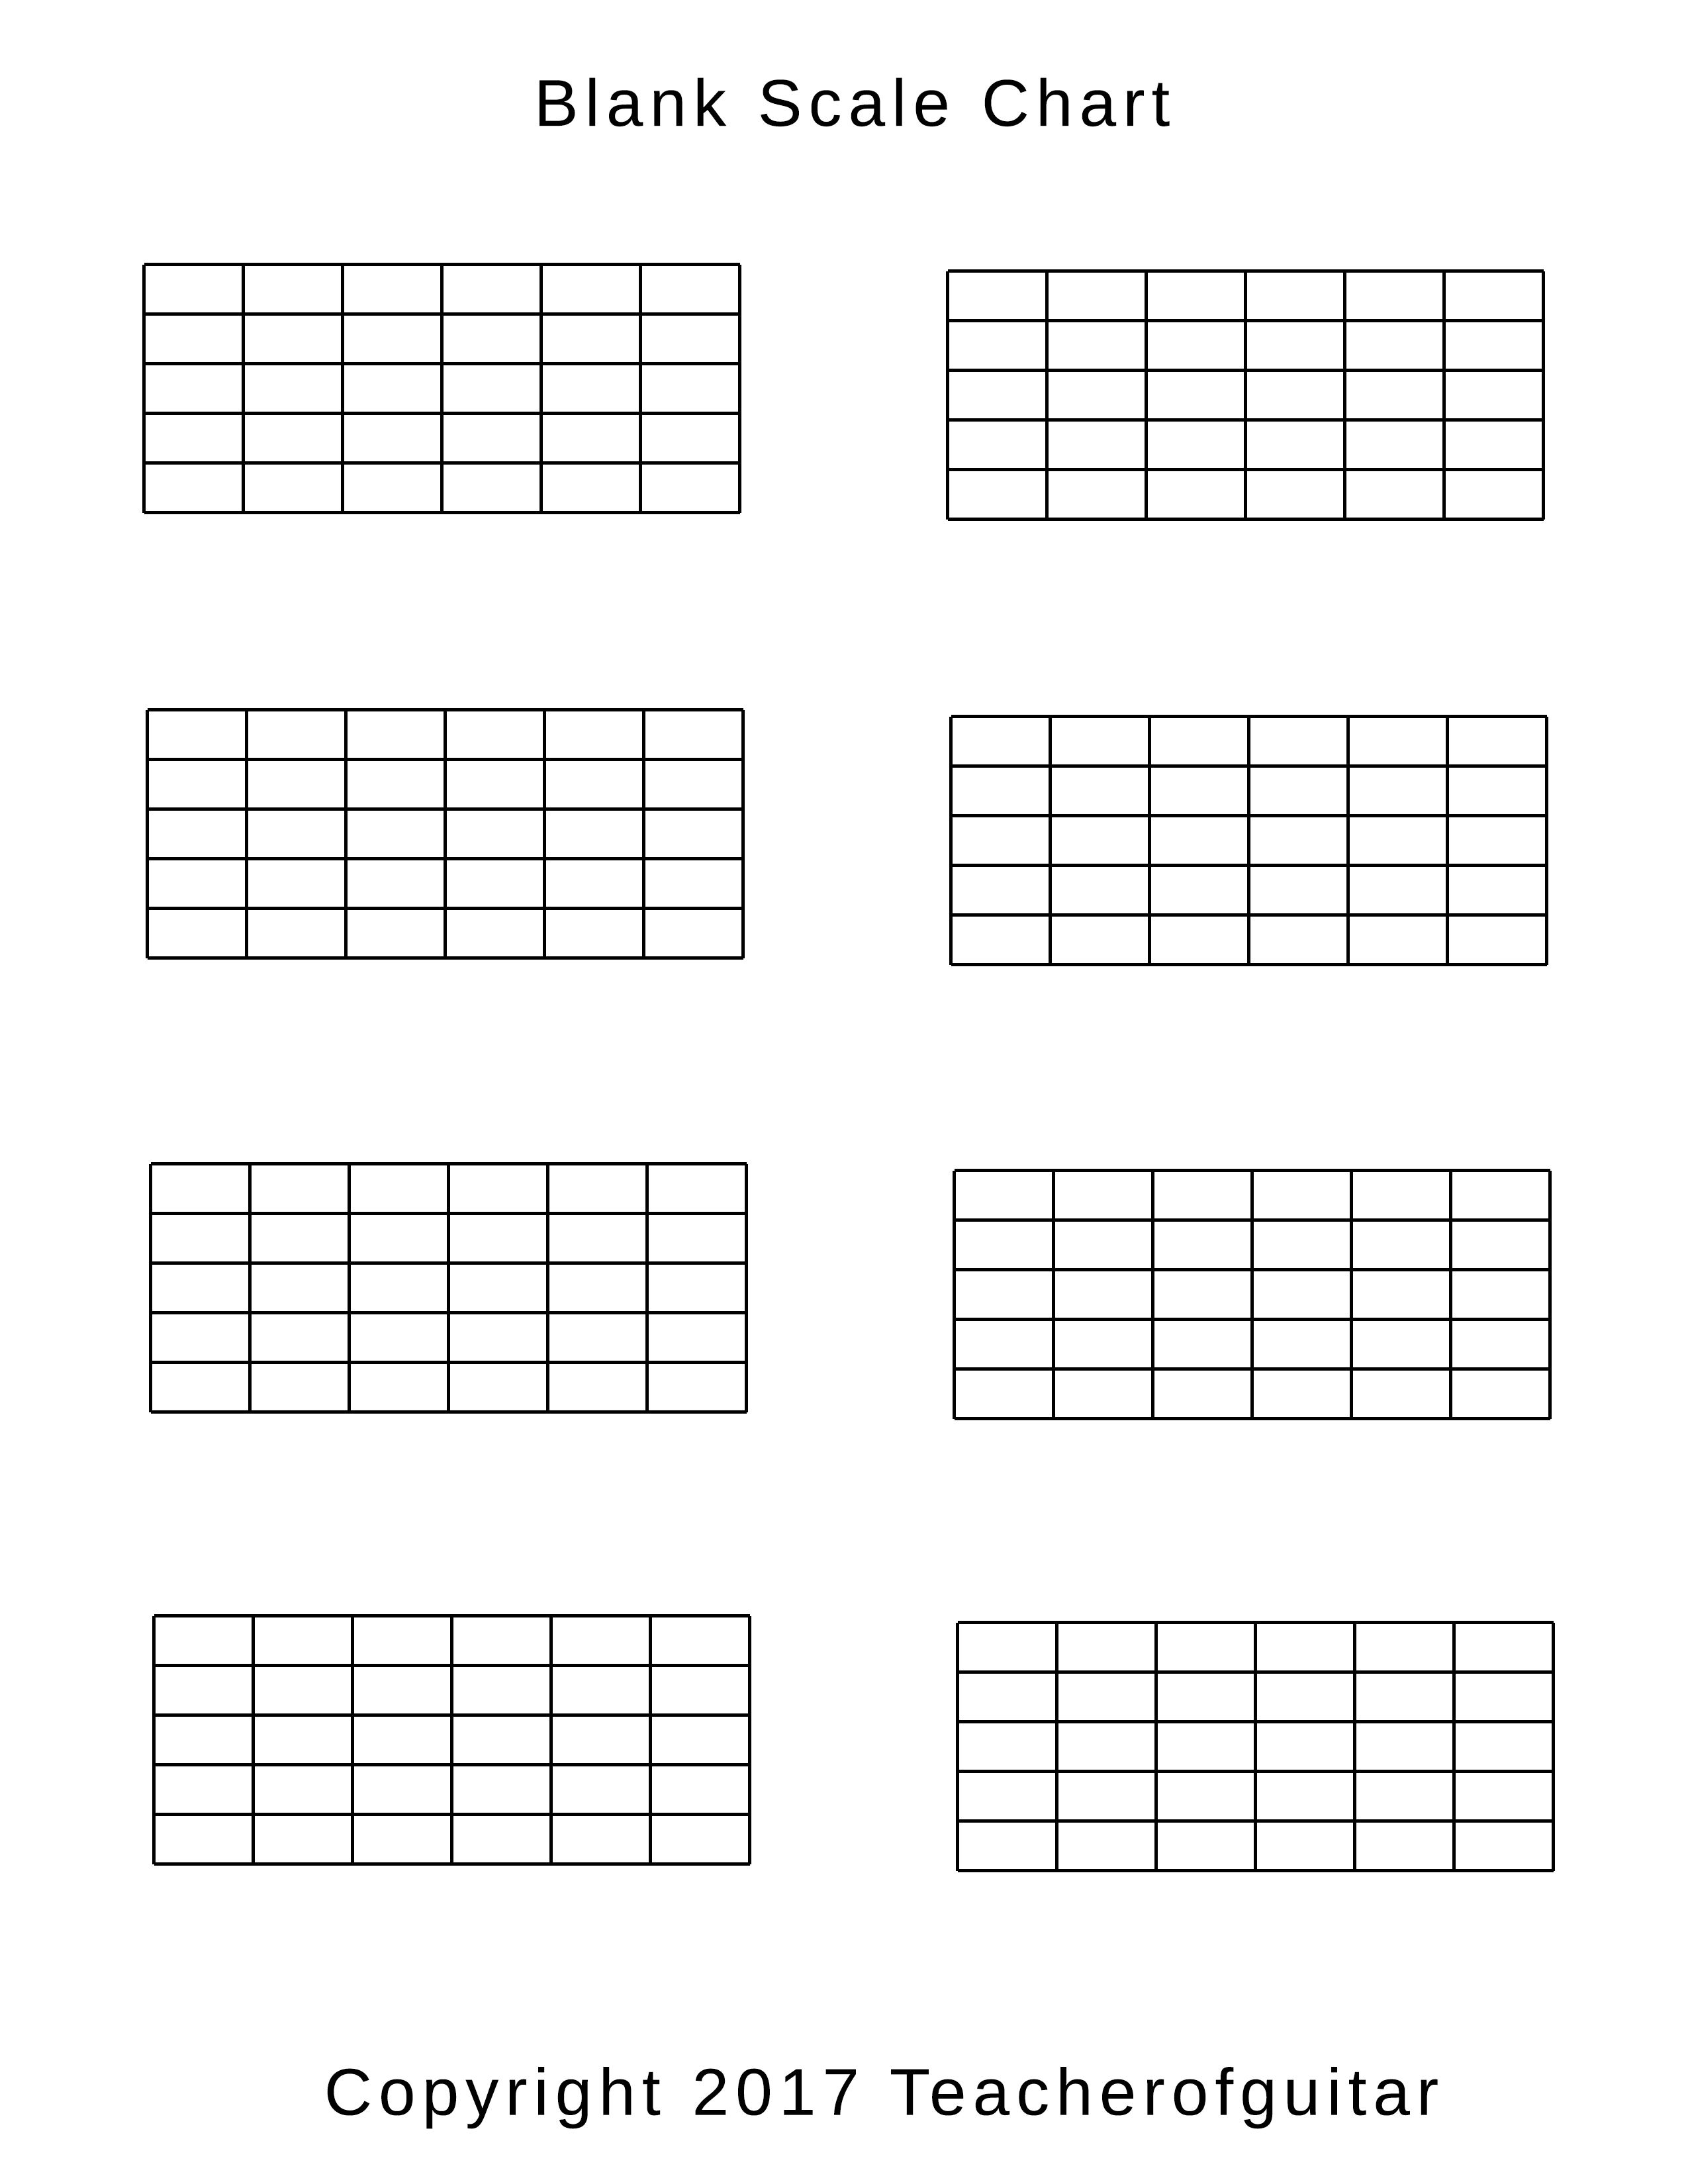 photograph regarding Guitar Pentatonic Scale Chart Printable named Blank Scale Chart - Trainer of Guitar